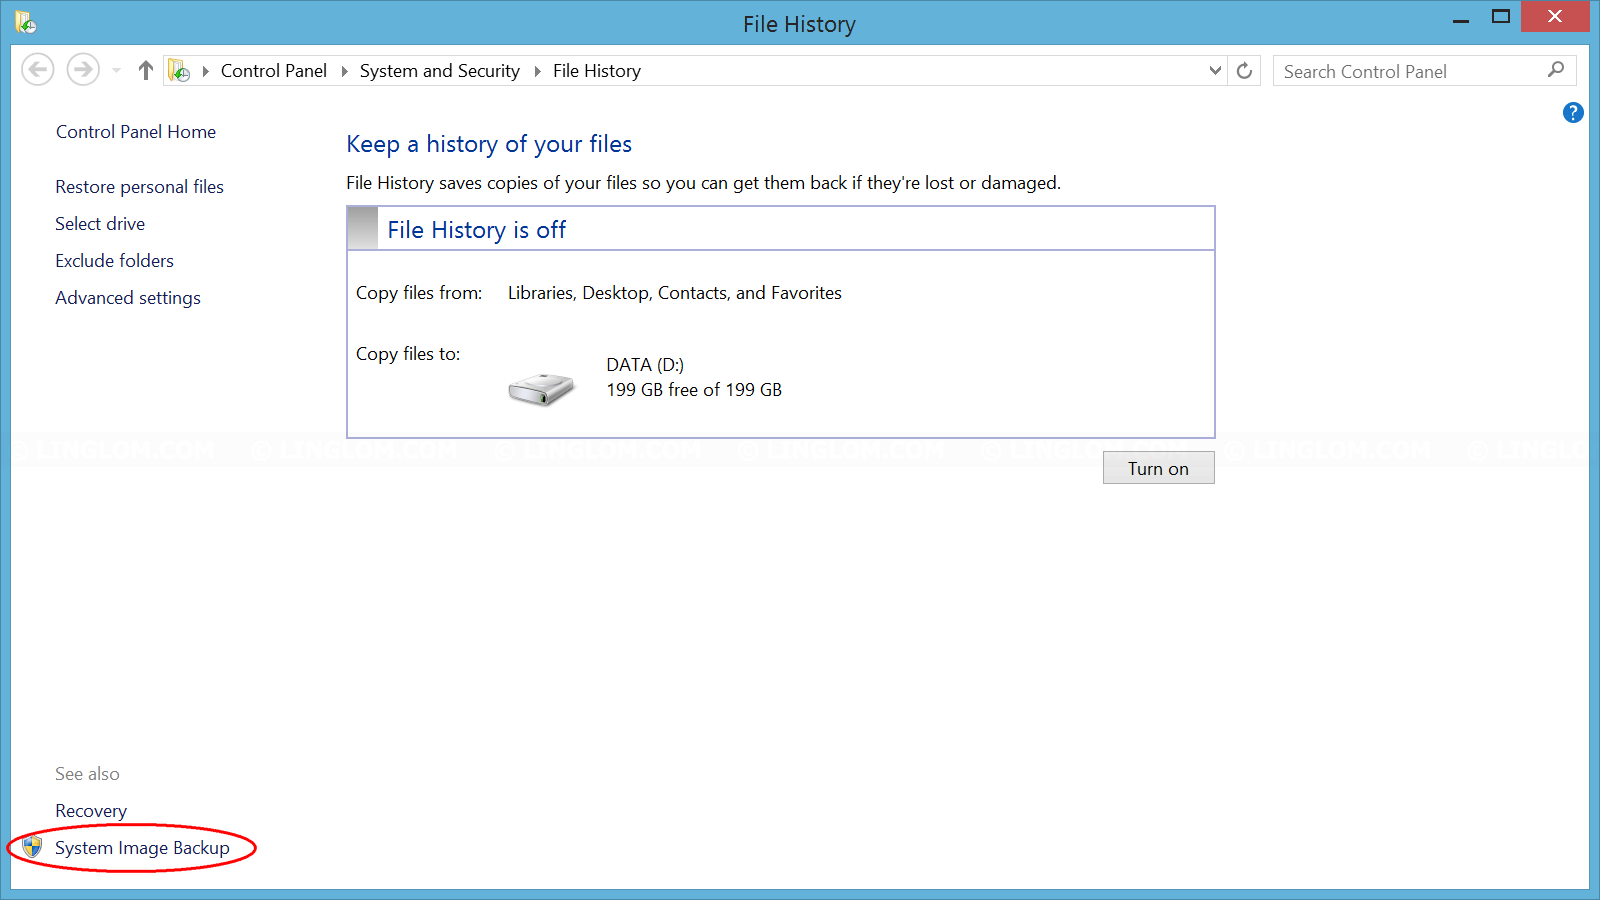 Open System Image Backup on Windows 8.1